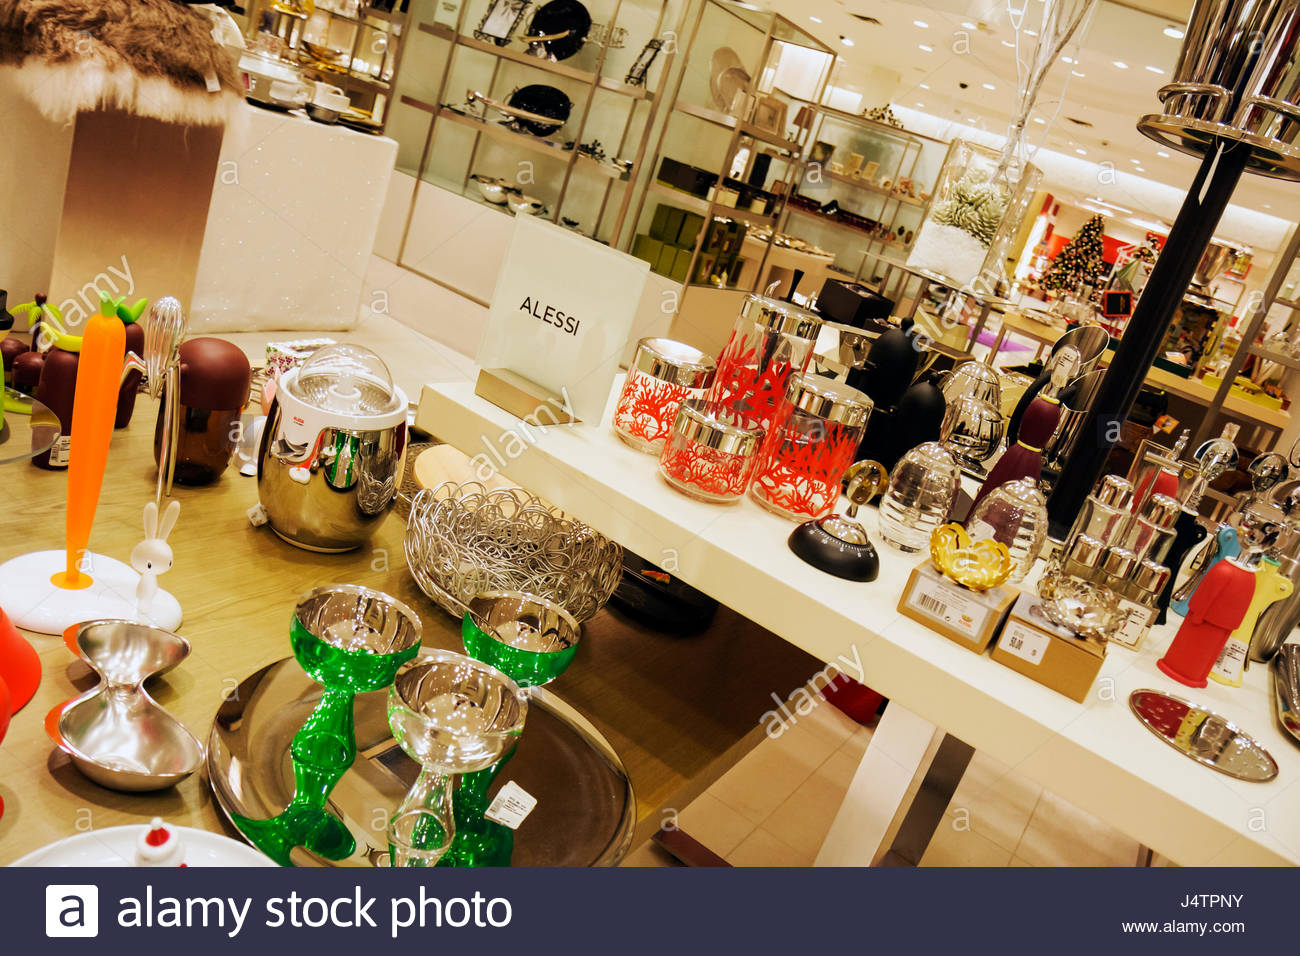 Palm Beach Florida Gardens The Gardens Mall Saks Fifth 5th Avenue business retail fashion upscale luxury high-end - Stock Image